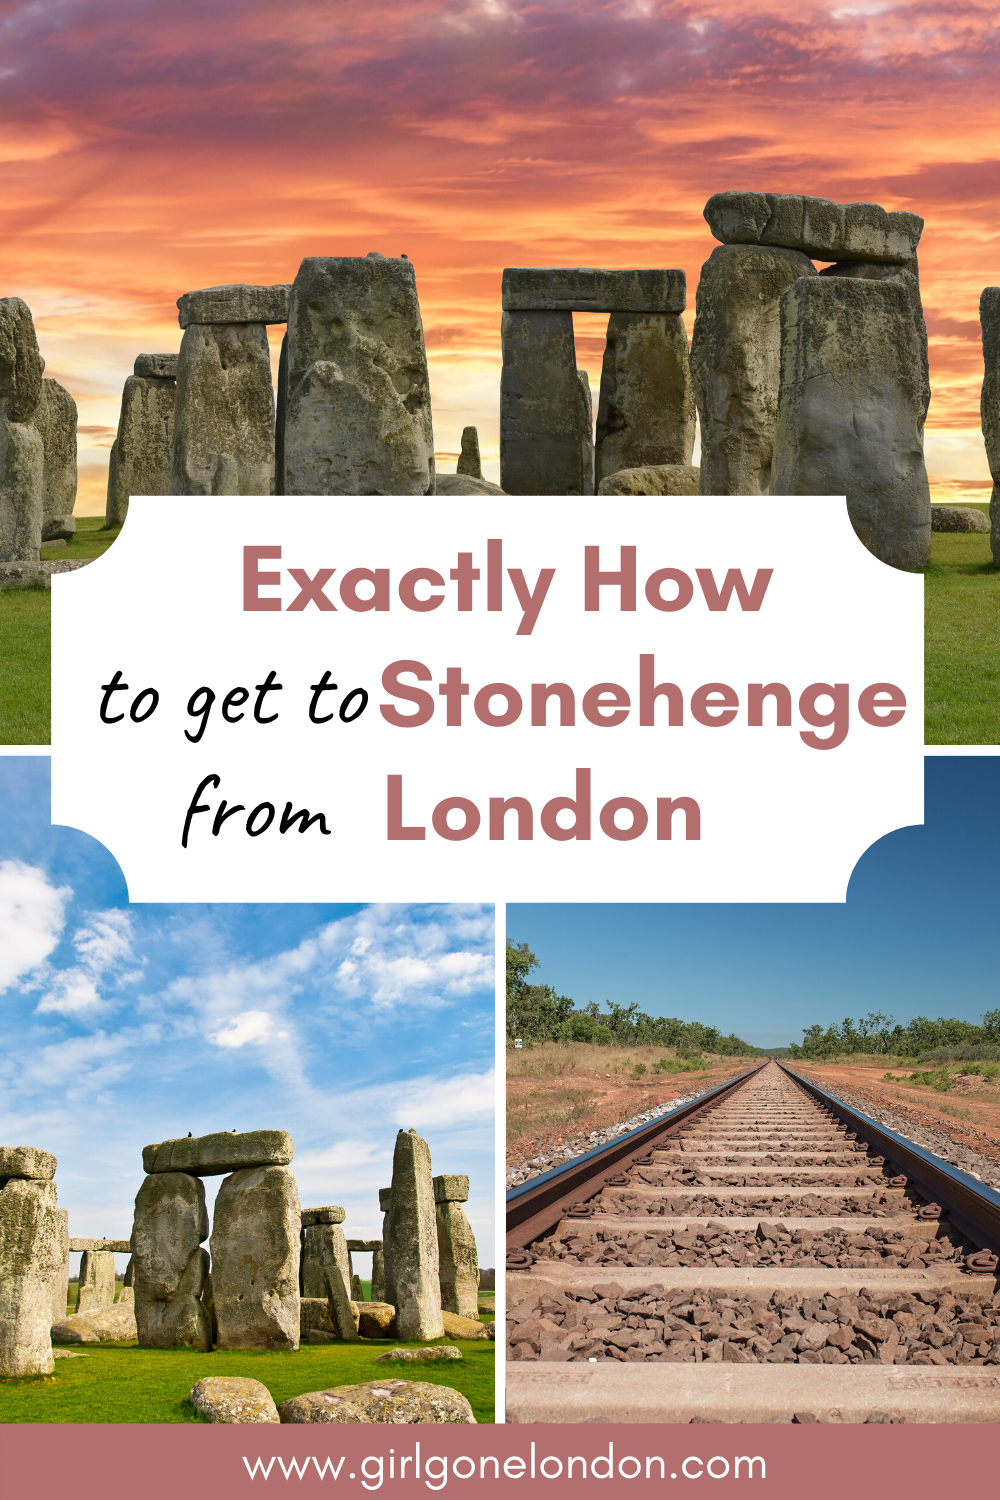 How Much Does It Cost To Get Into Stonehenge